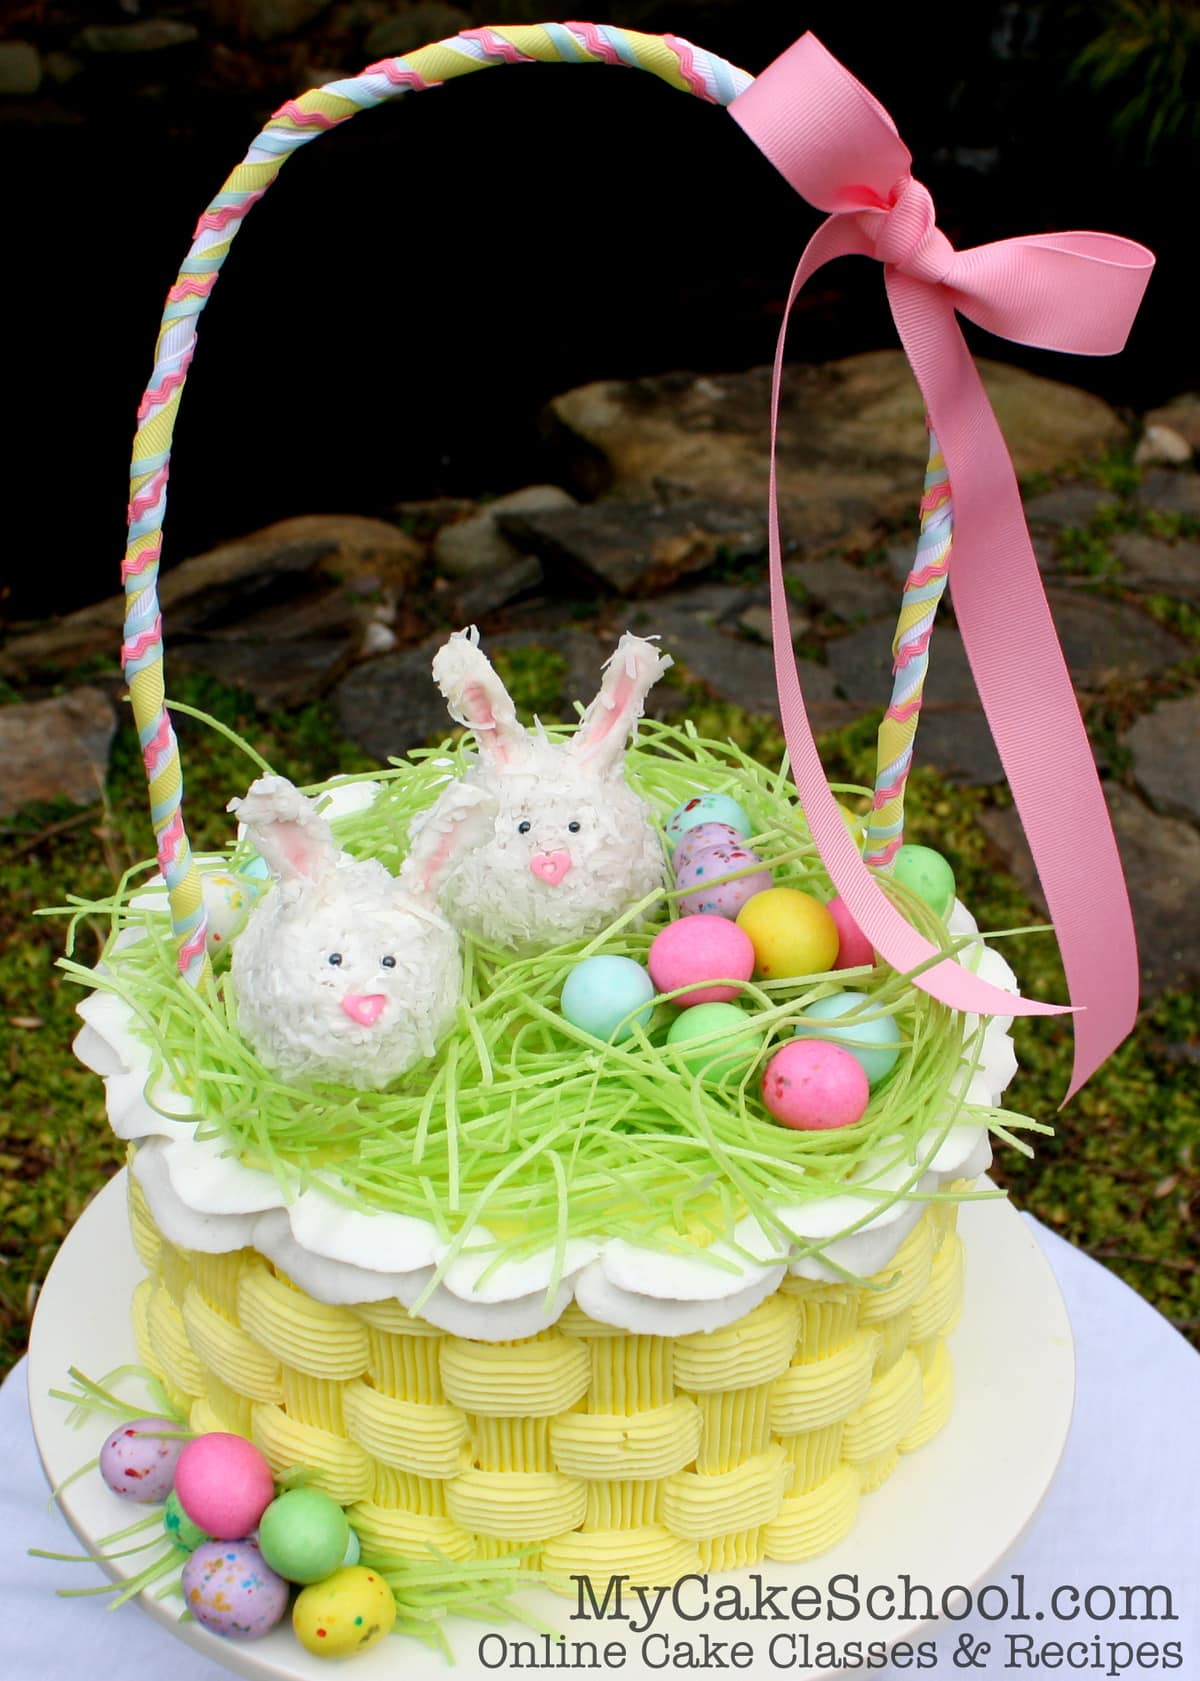 Adorable Easter Basket Cake! MyCakeSchool.com Member Video Tutorial.